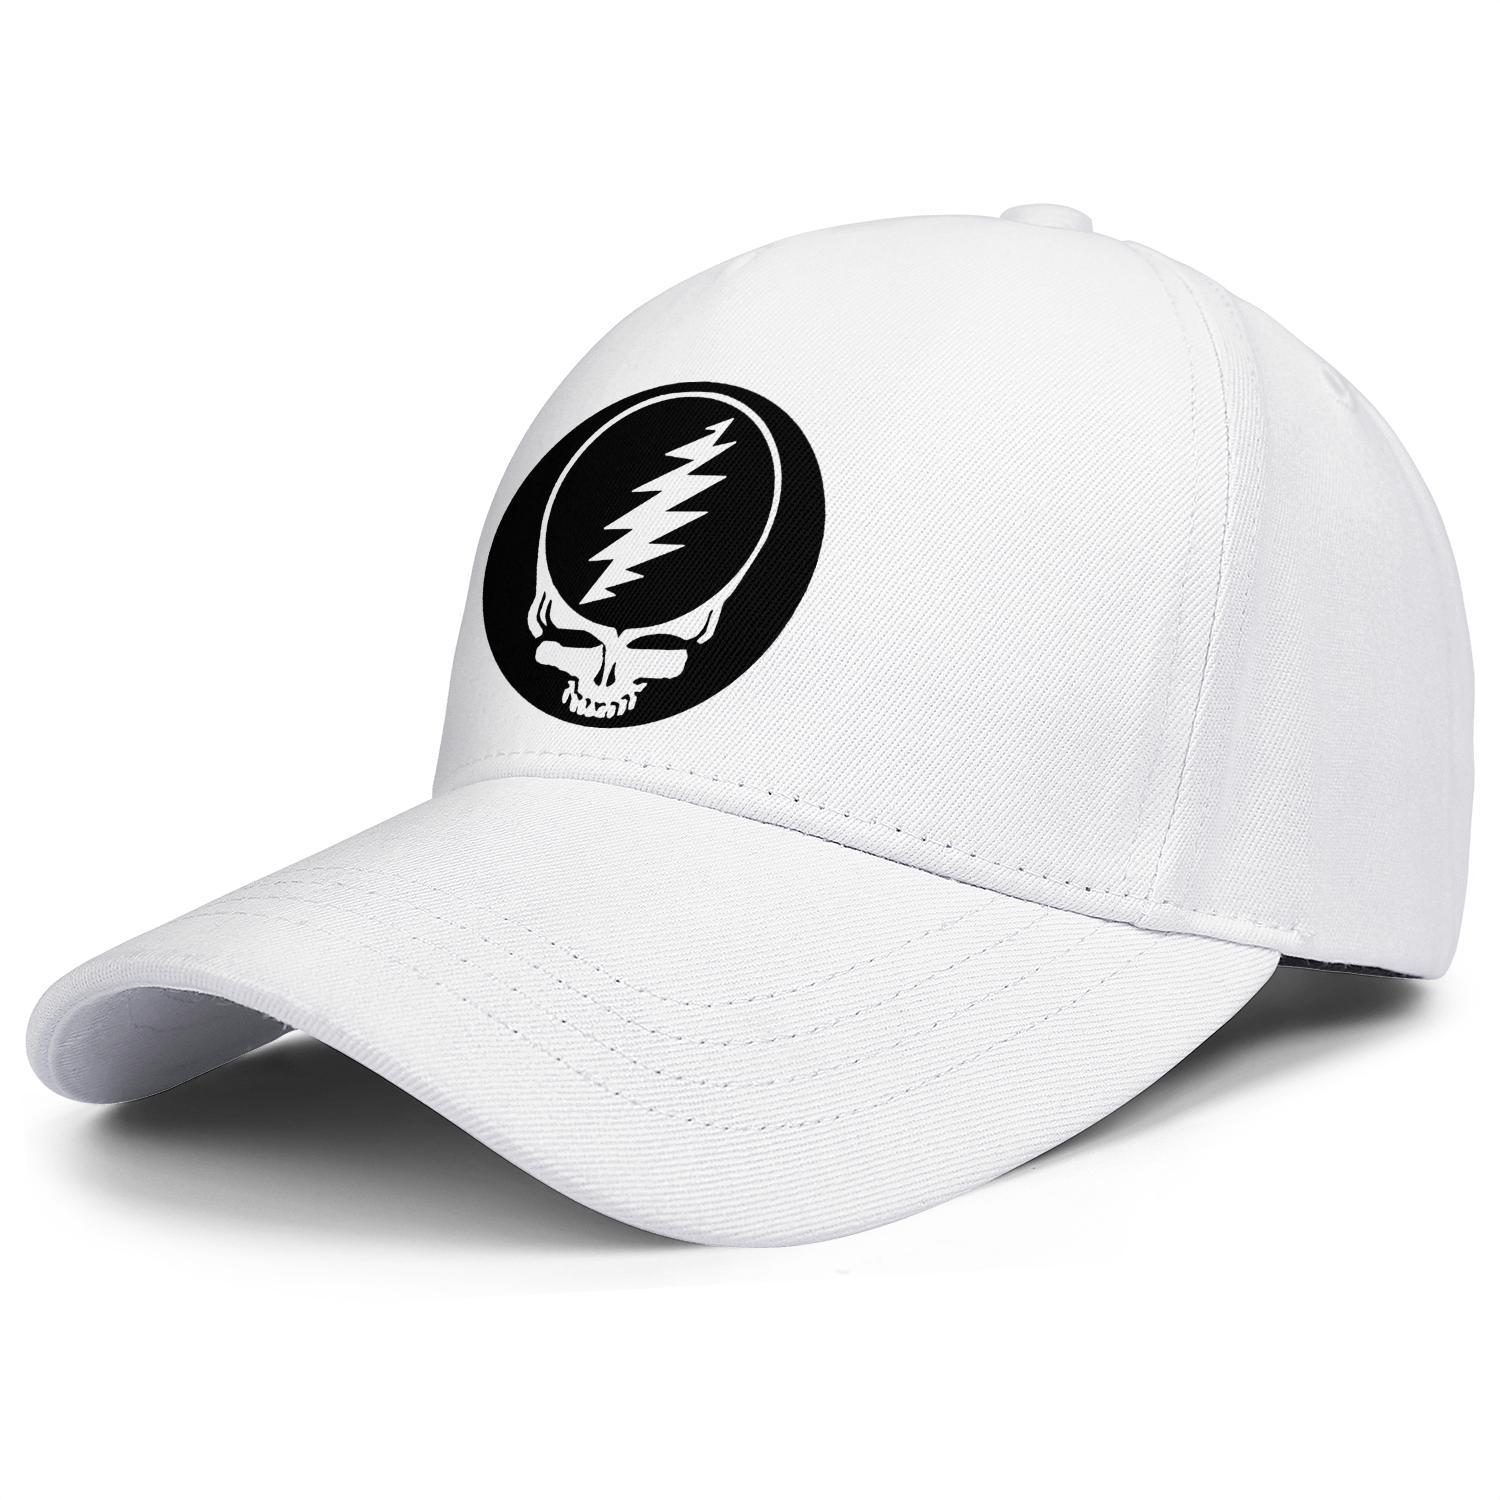 Fashion Baseball Cap grateful dead skull logo black Adjustable Ball Hat Cool Personalized Trucker Cricket white rainbow Grateful 71